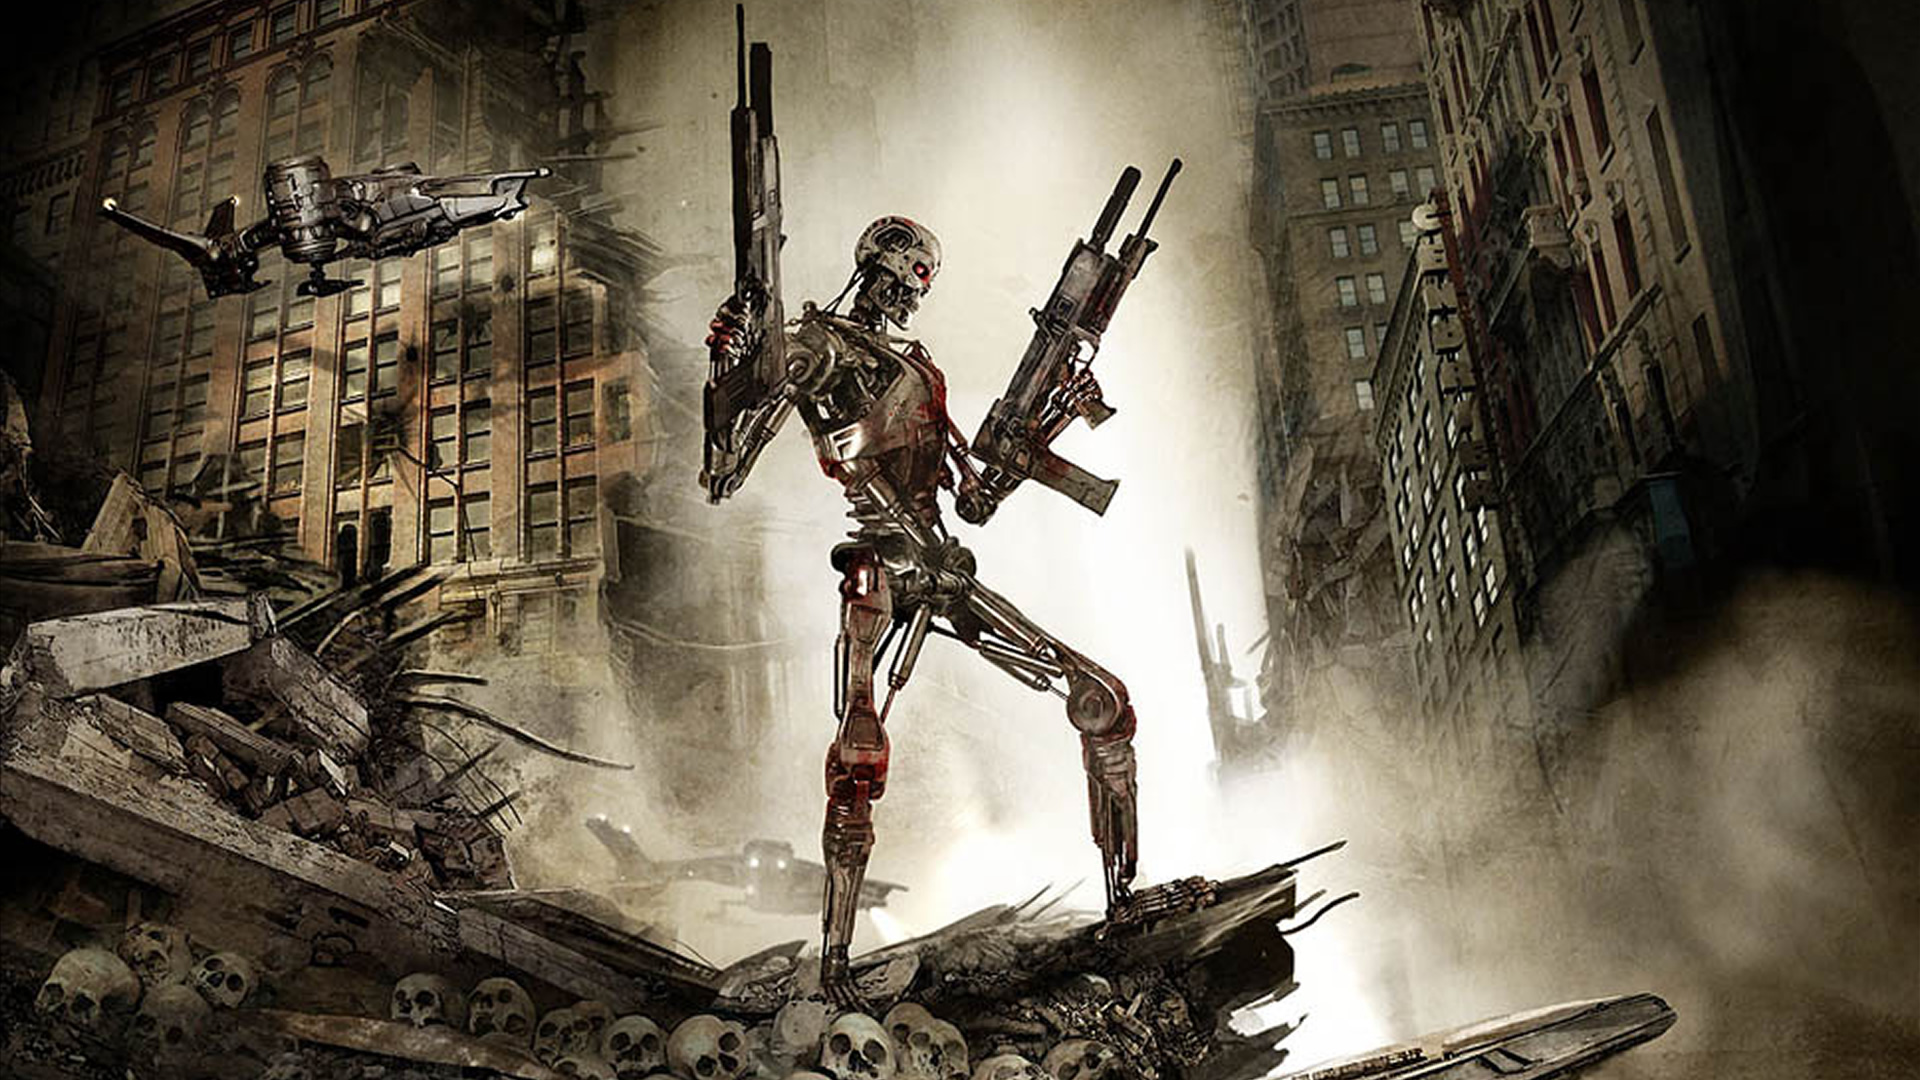 terminator salvation live wallpaper Download this terminator salvation theme for samsung s8300 now that arnie's too busy, and probably too old, to take on another terminator film, batman star christian bale has taken the helm of the new series reboot movie, terminator salvation.